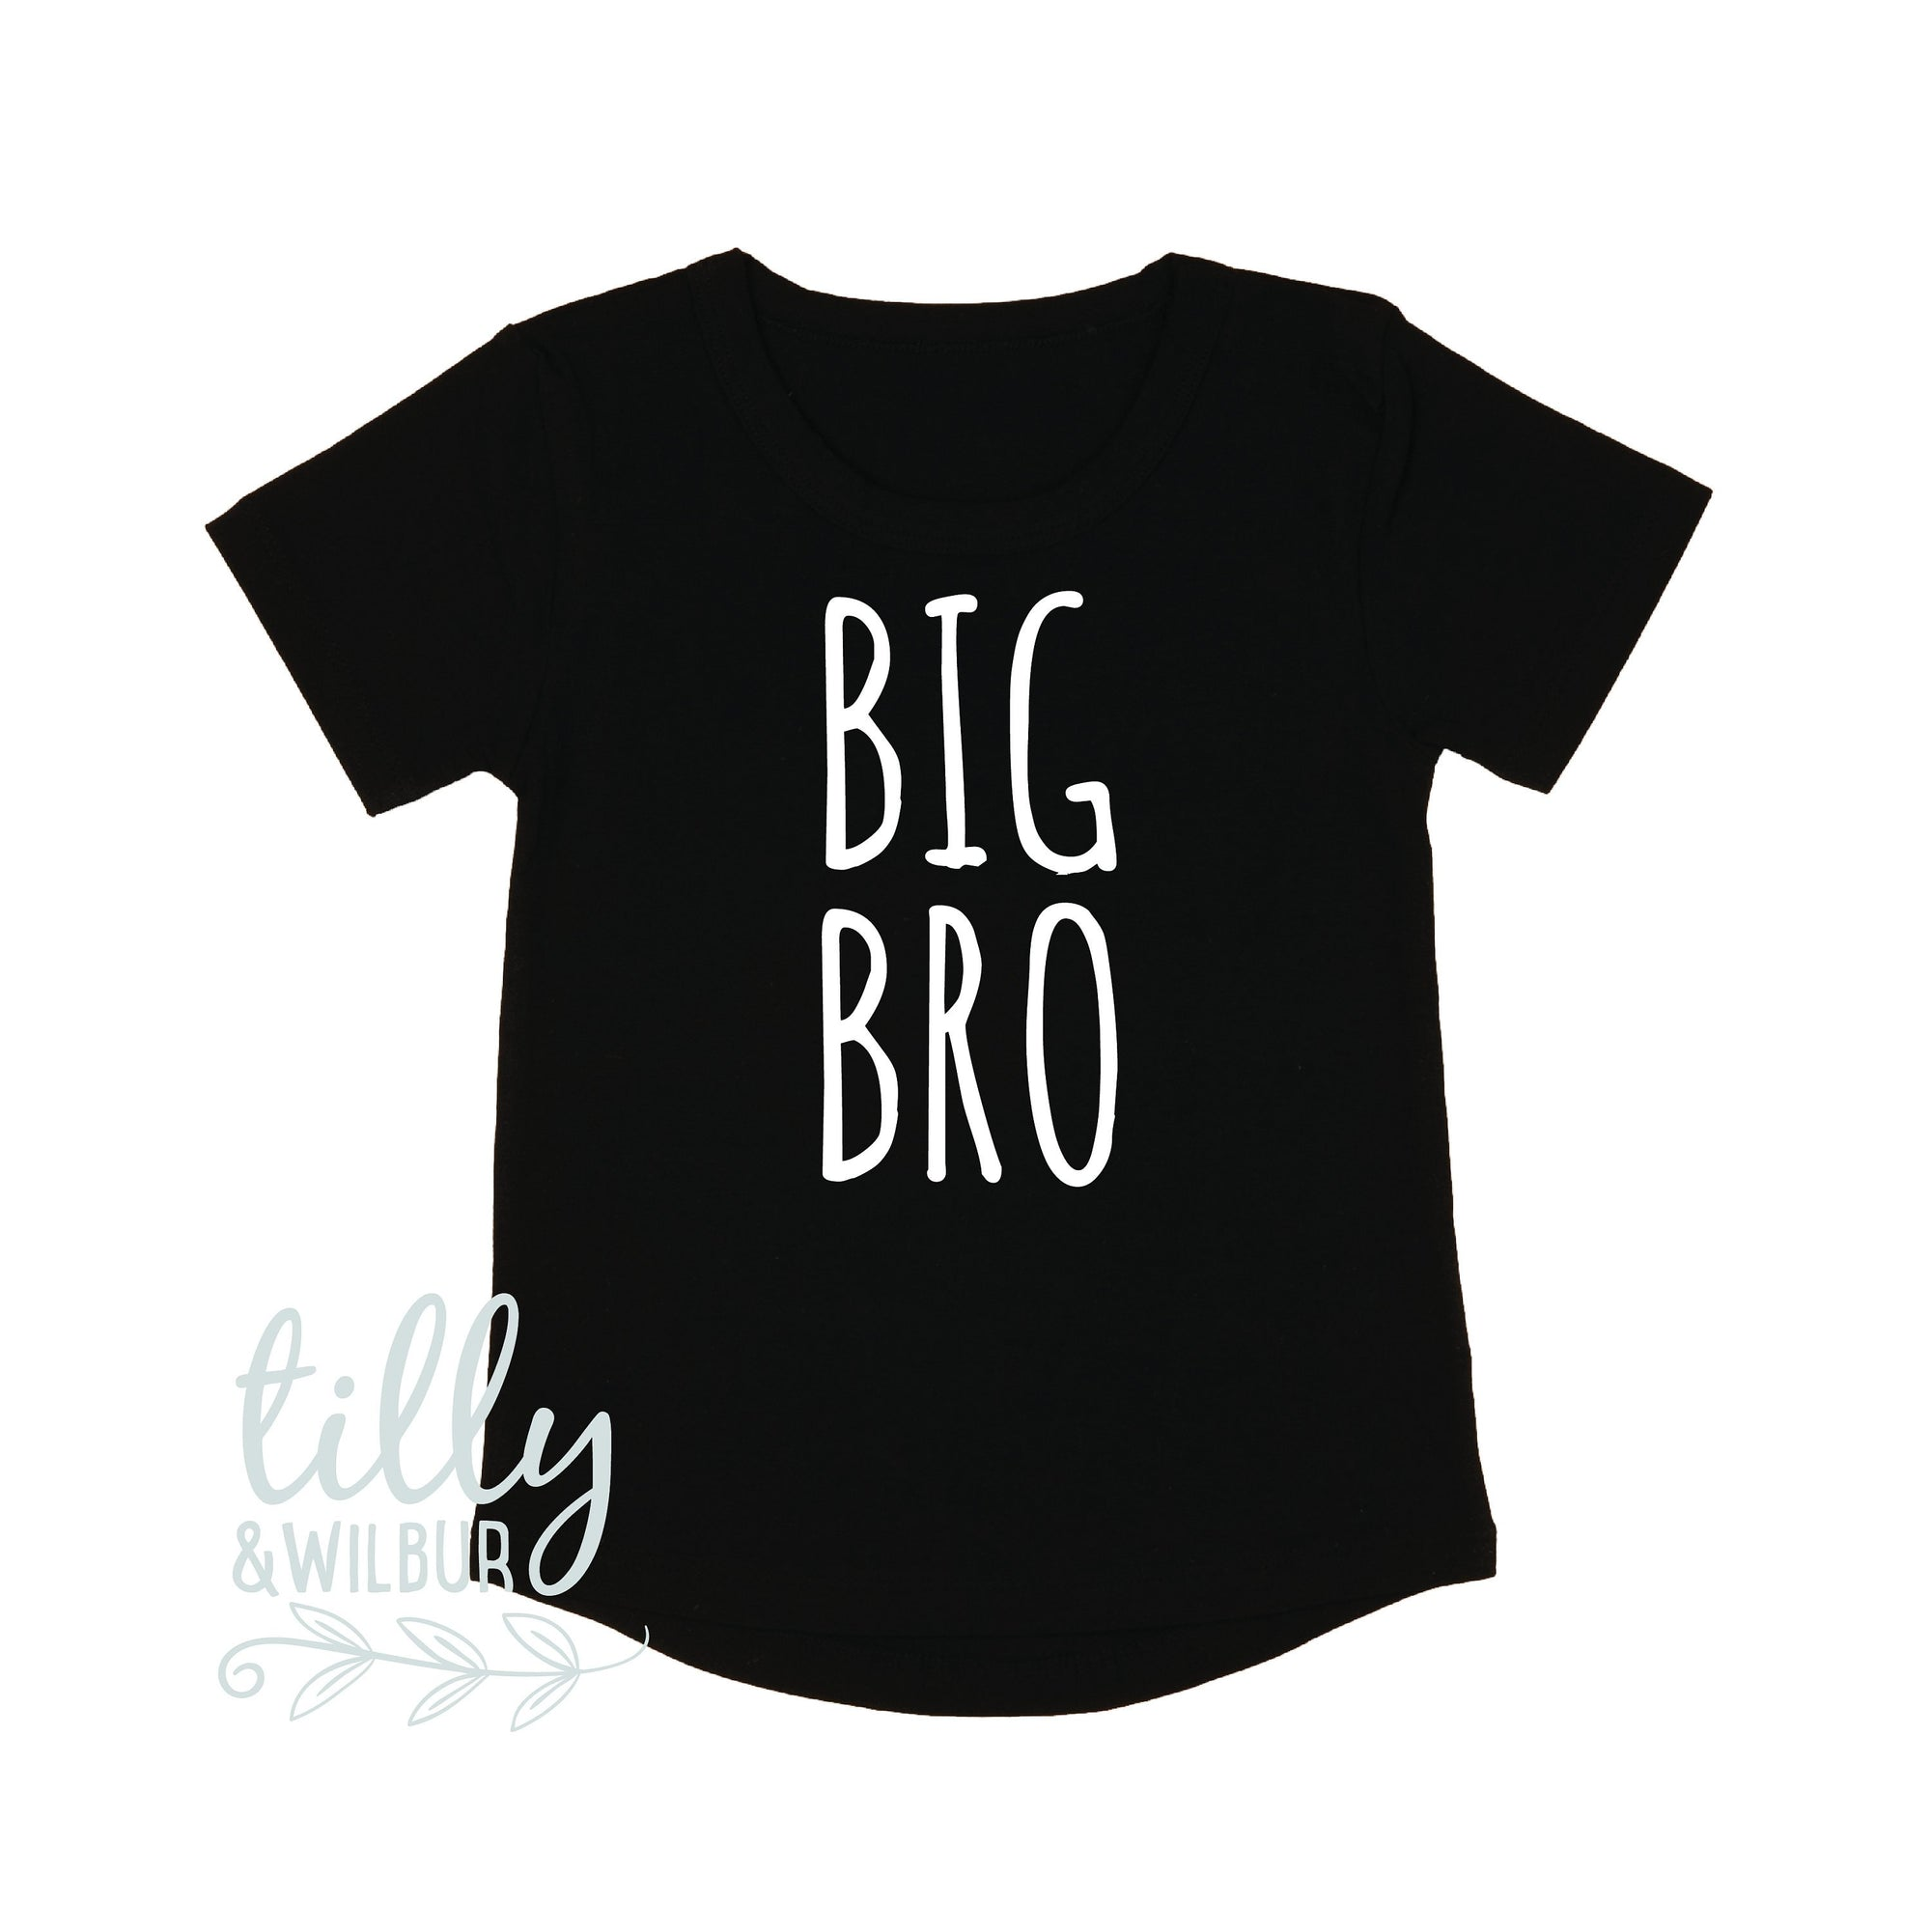 Big Bro T-Shirt, Big Brother Shirt, I'm Going To Be A Big Brother, Pregnancy Announcement Shirt, Big Bro Gift, Sibling TShirt, Boys Clothing